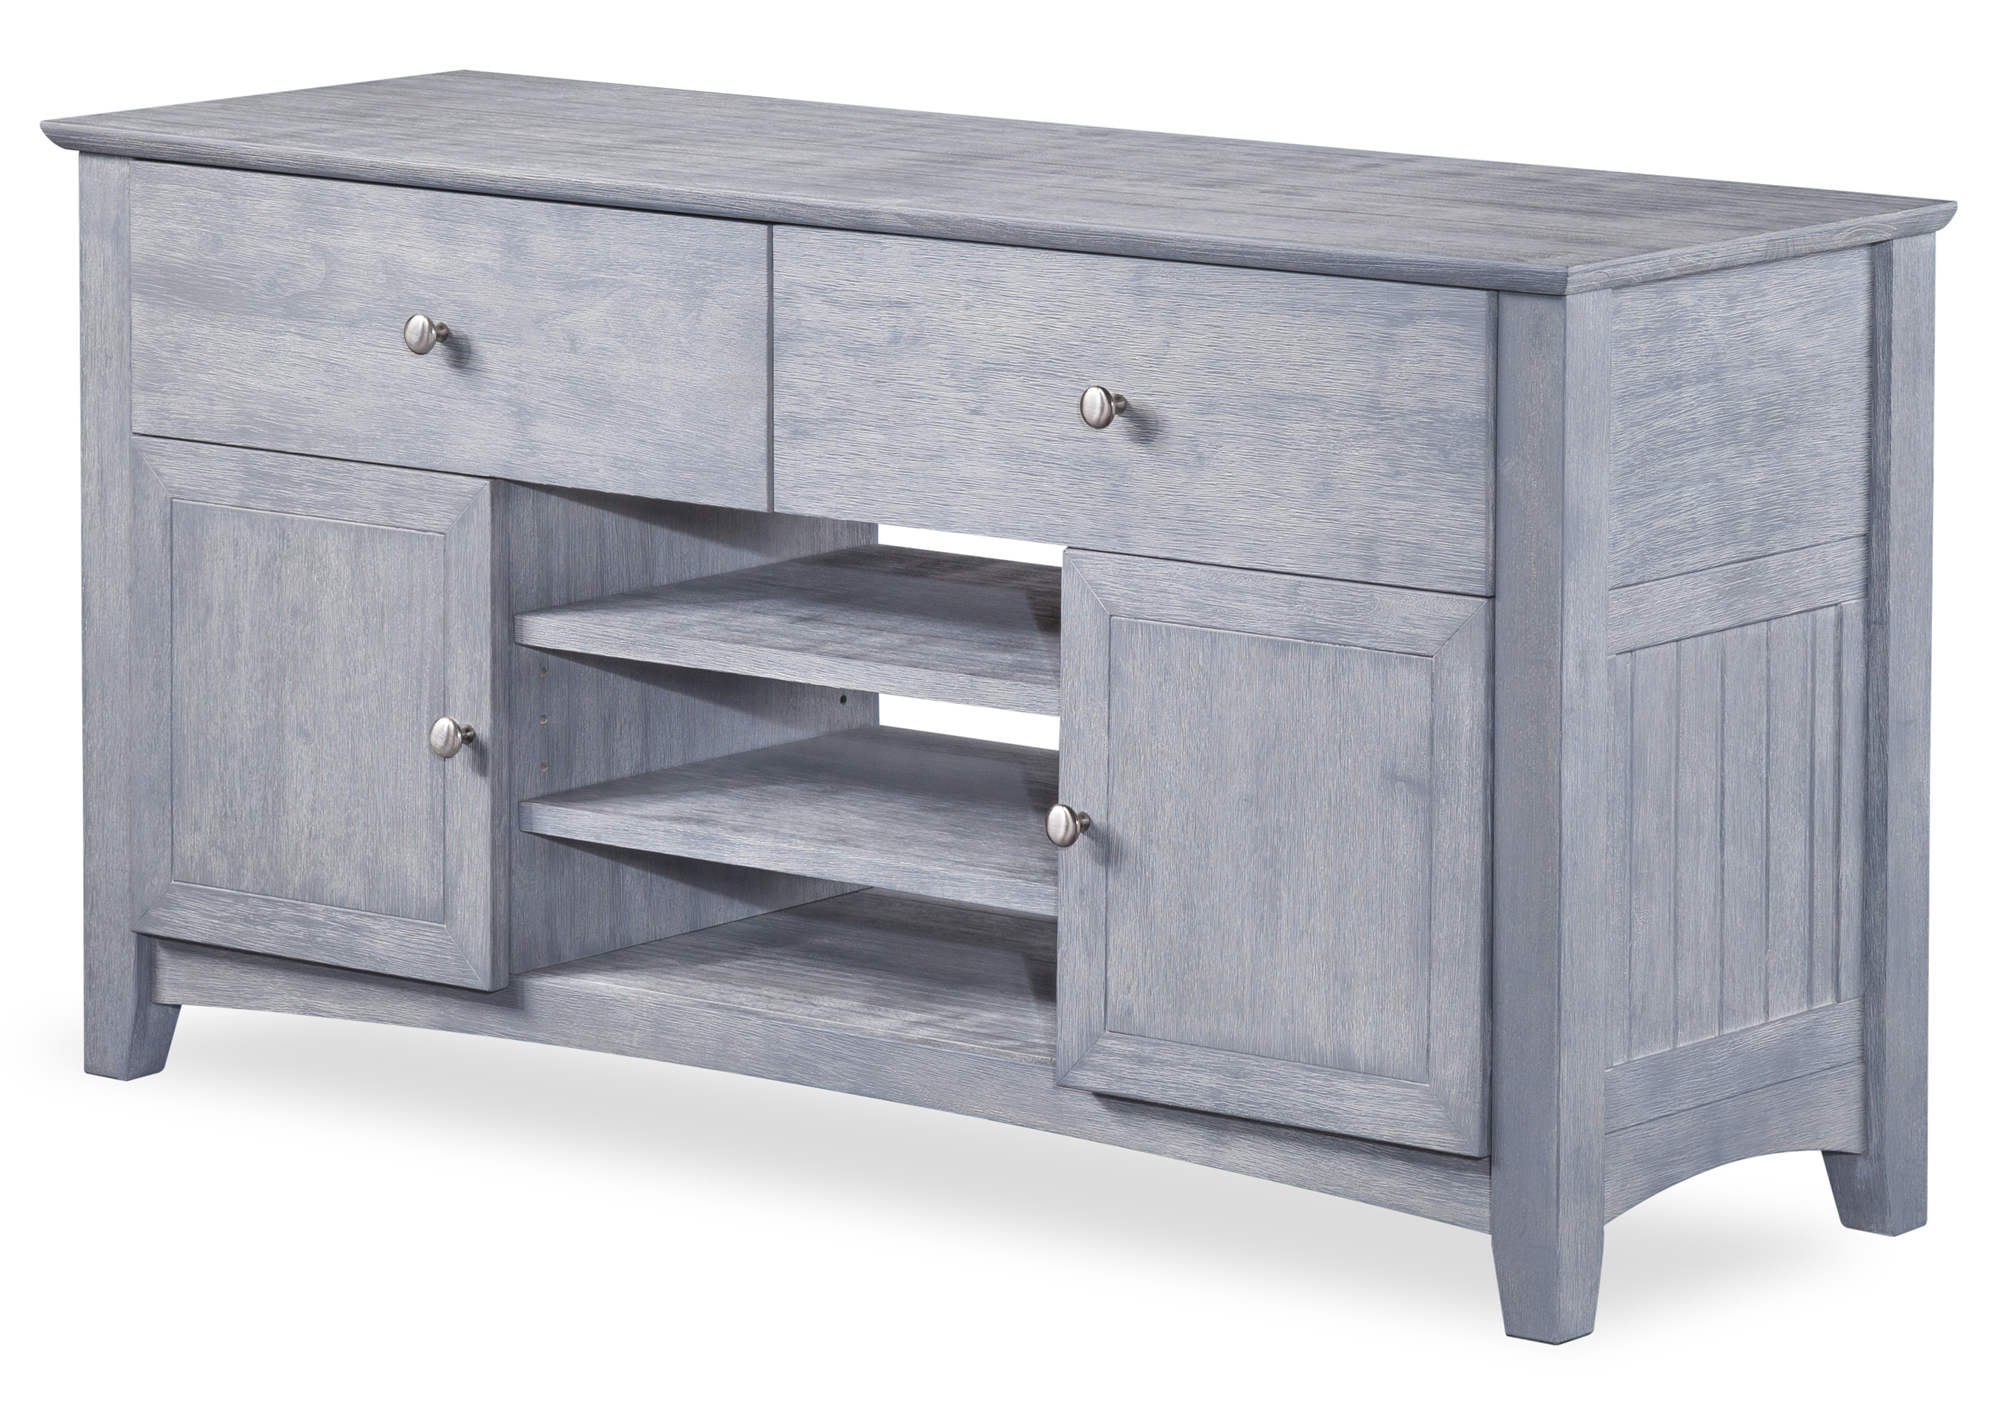 Nantucket 2 Drawer TV Table 26x50 with Adjustable Shelves in Driftwood by Atlantic Furniture